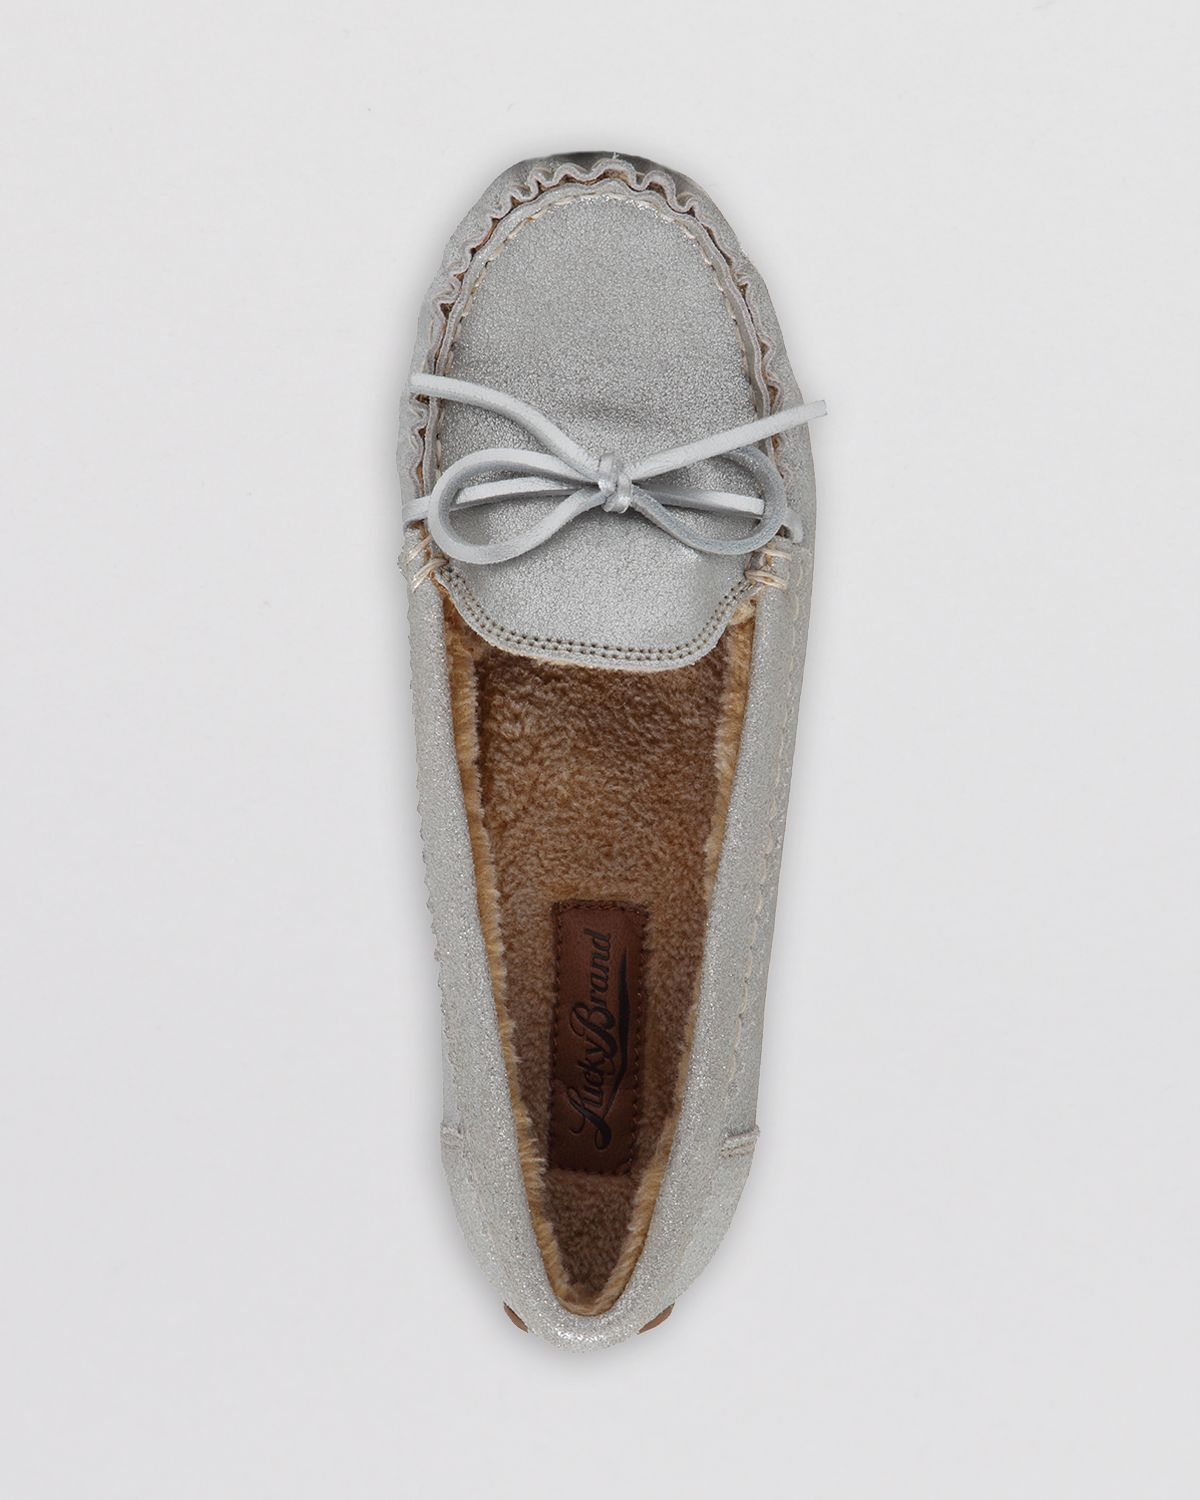 d212bbe6d4b Lyst - Lucky Brand Driving Moccasin Flats - Aligabe in Metallic